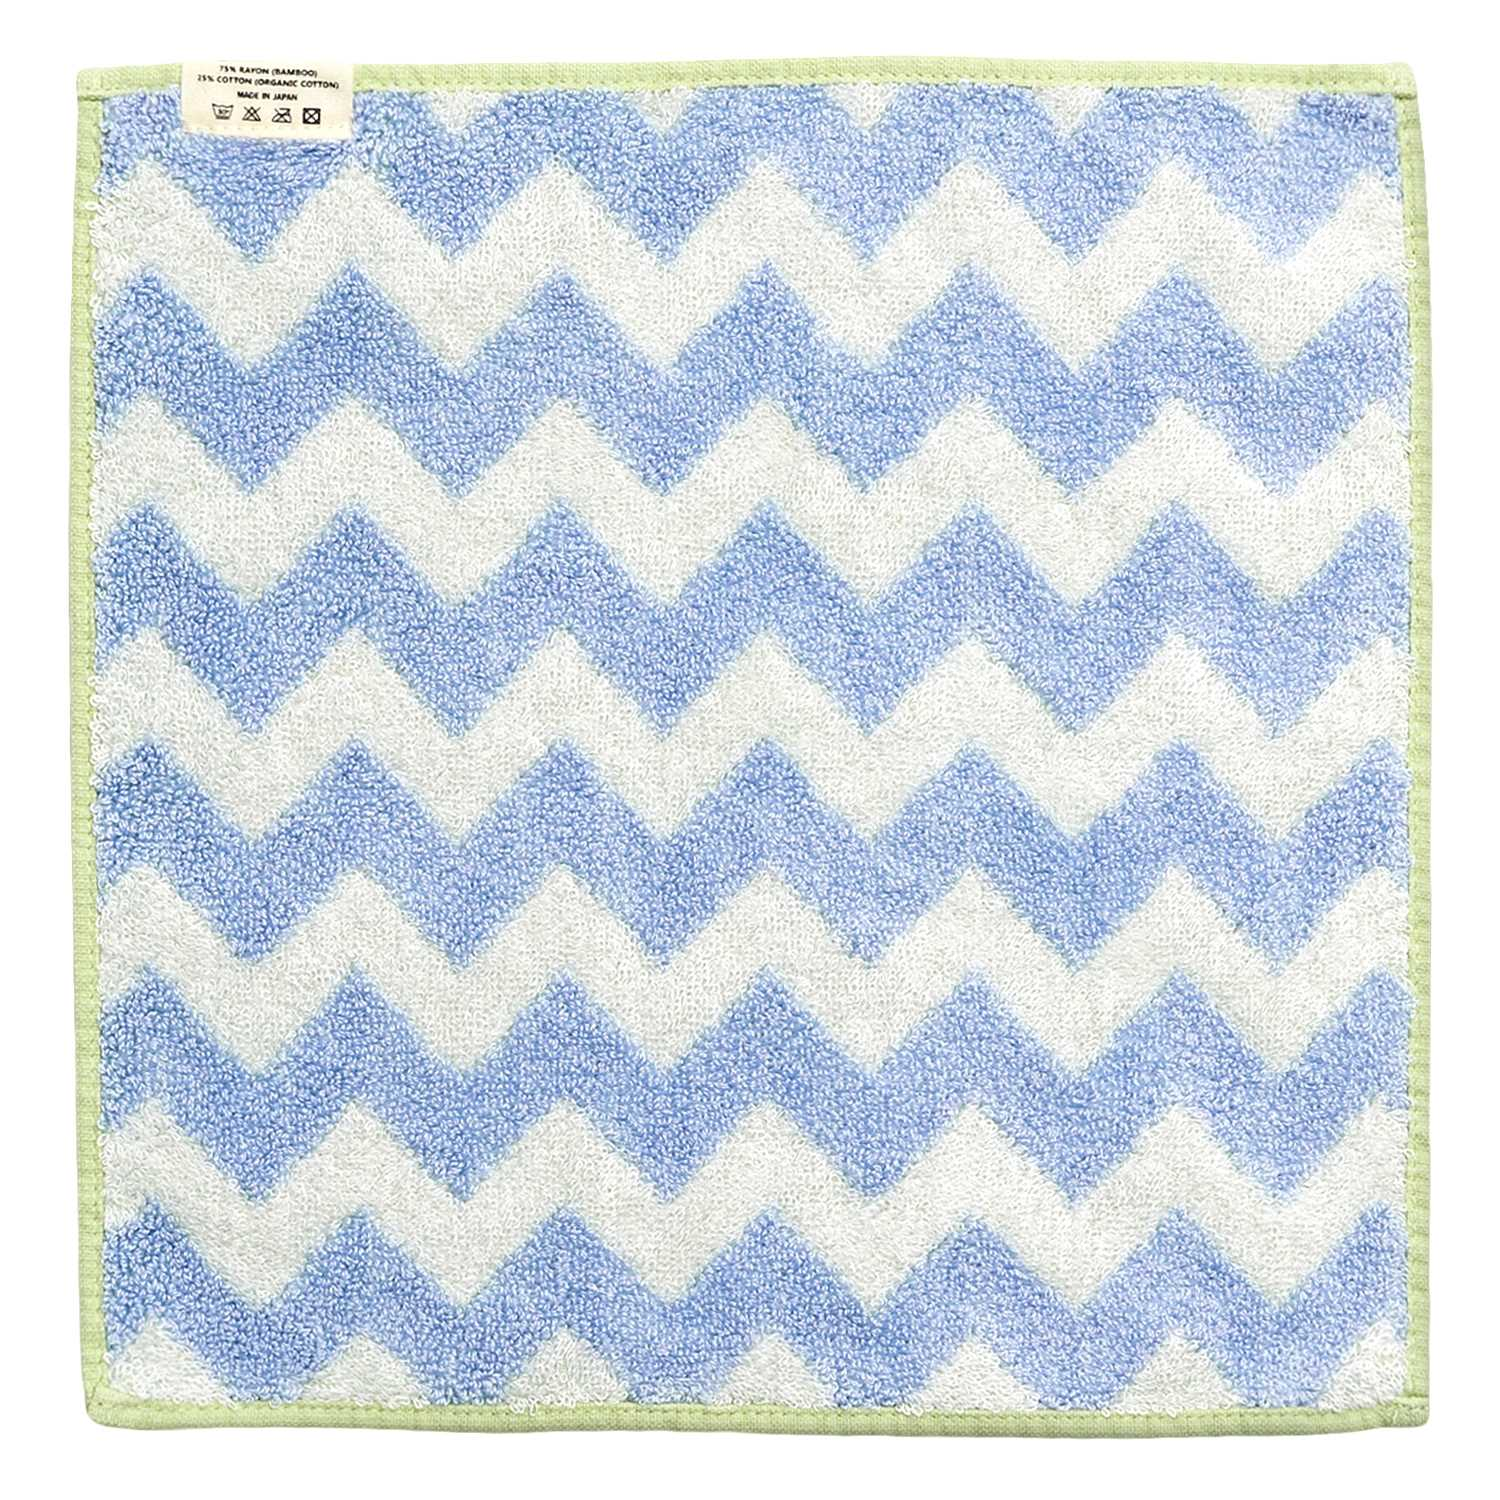 MINI TOWEL (CHEVRON)